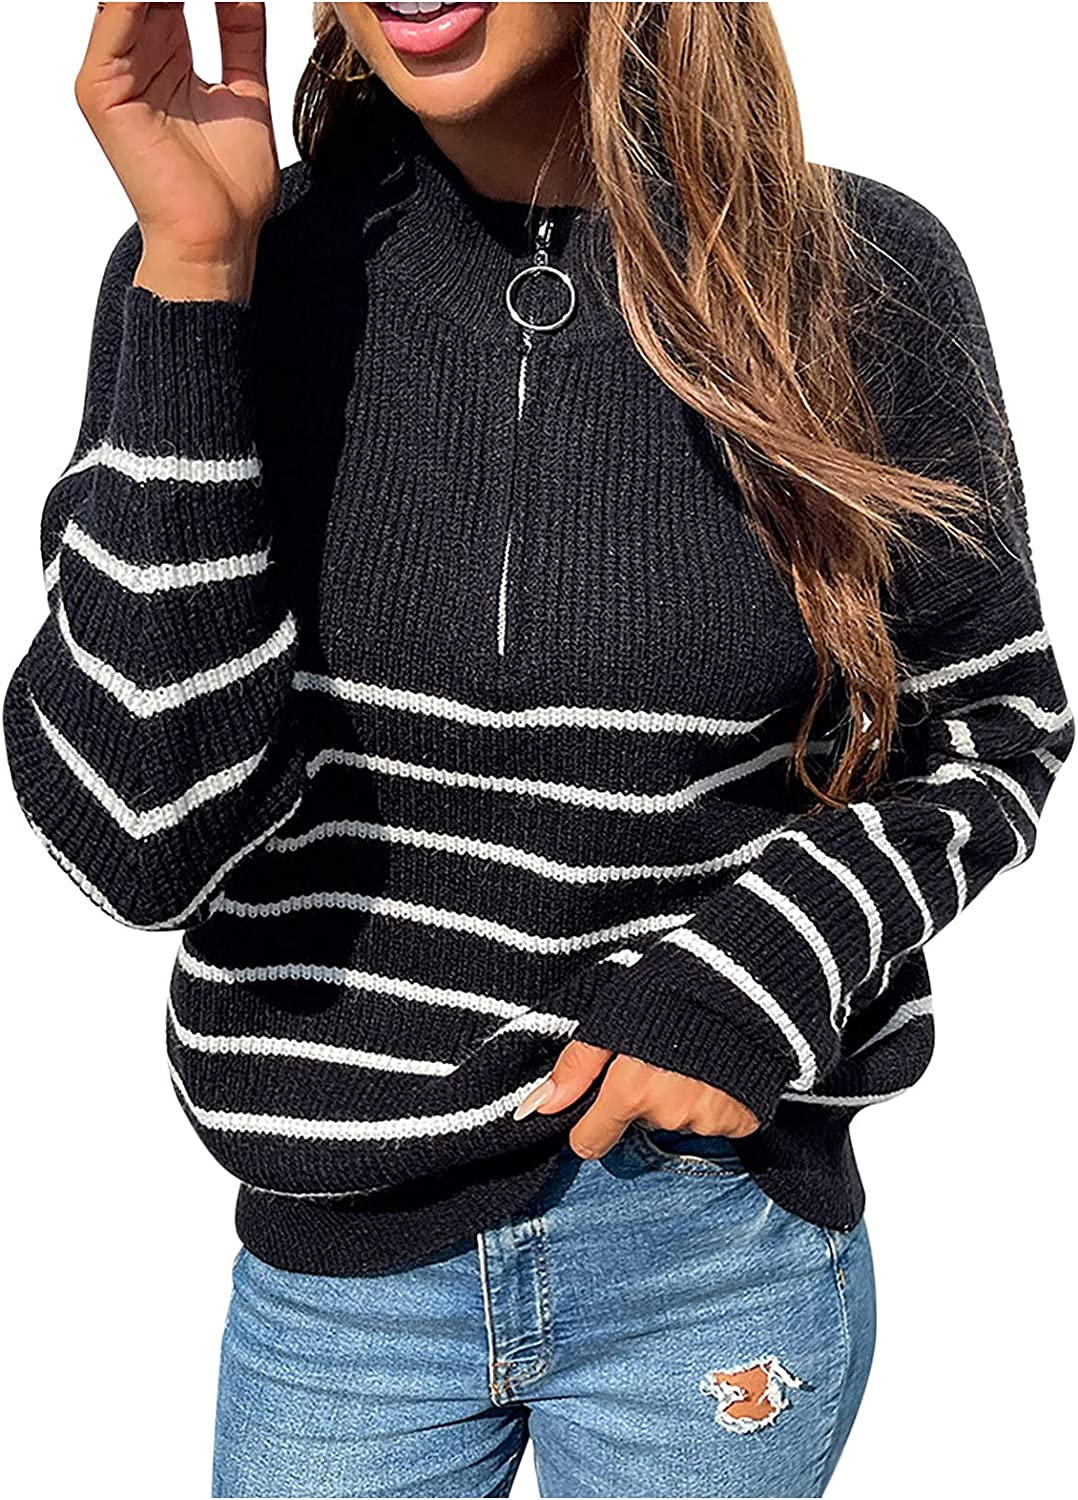 Women's Casual Hoodies Pullover Fashion Zipper Striped Sweatshirts Long Sleeve Ladies Knitted Sweater Tops